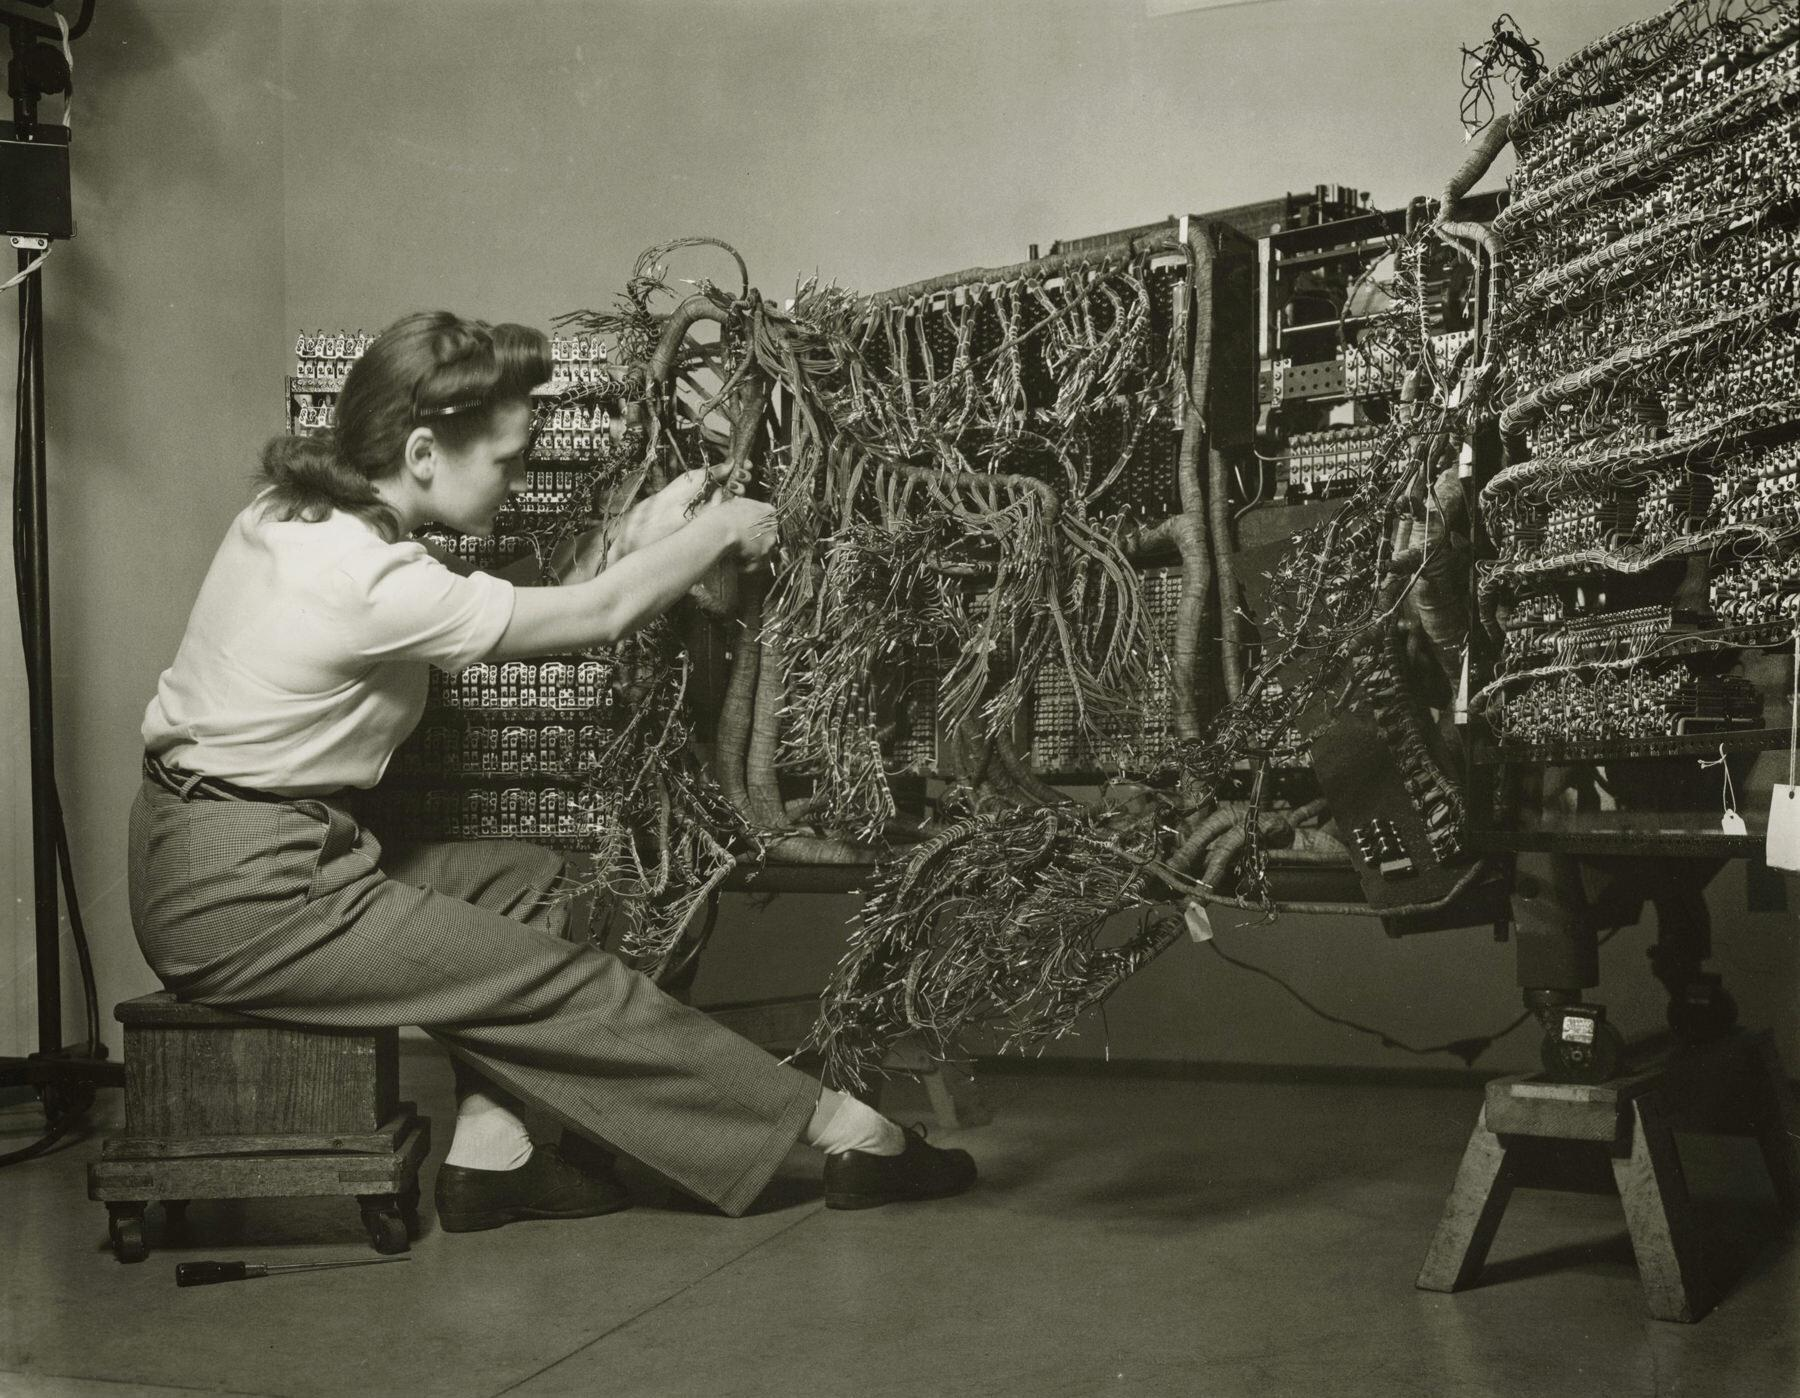 Woman wiring an early IBM computer, from the documenting science series, 1958 © Berenice Abbott Legendary Women in Photography